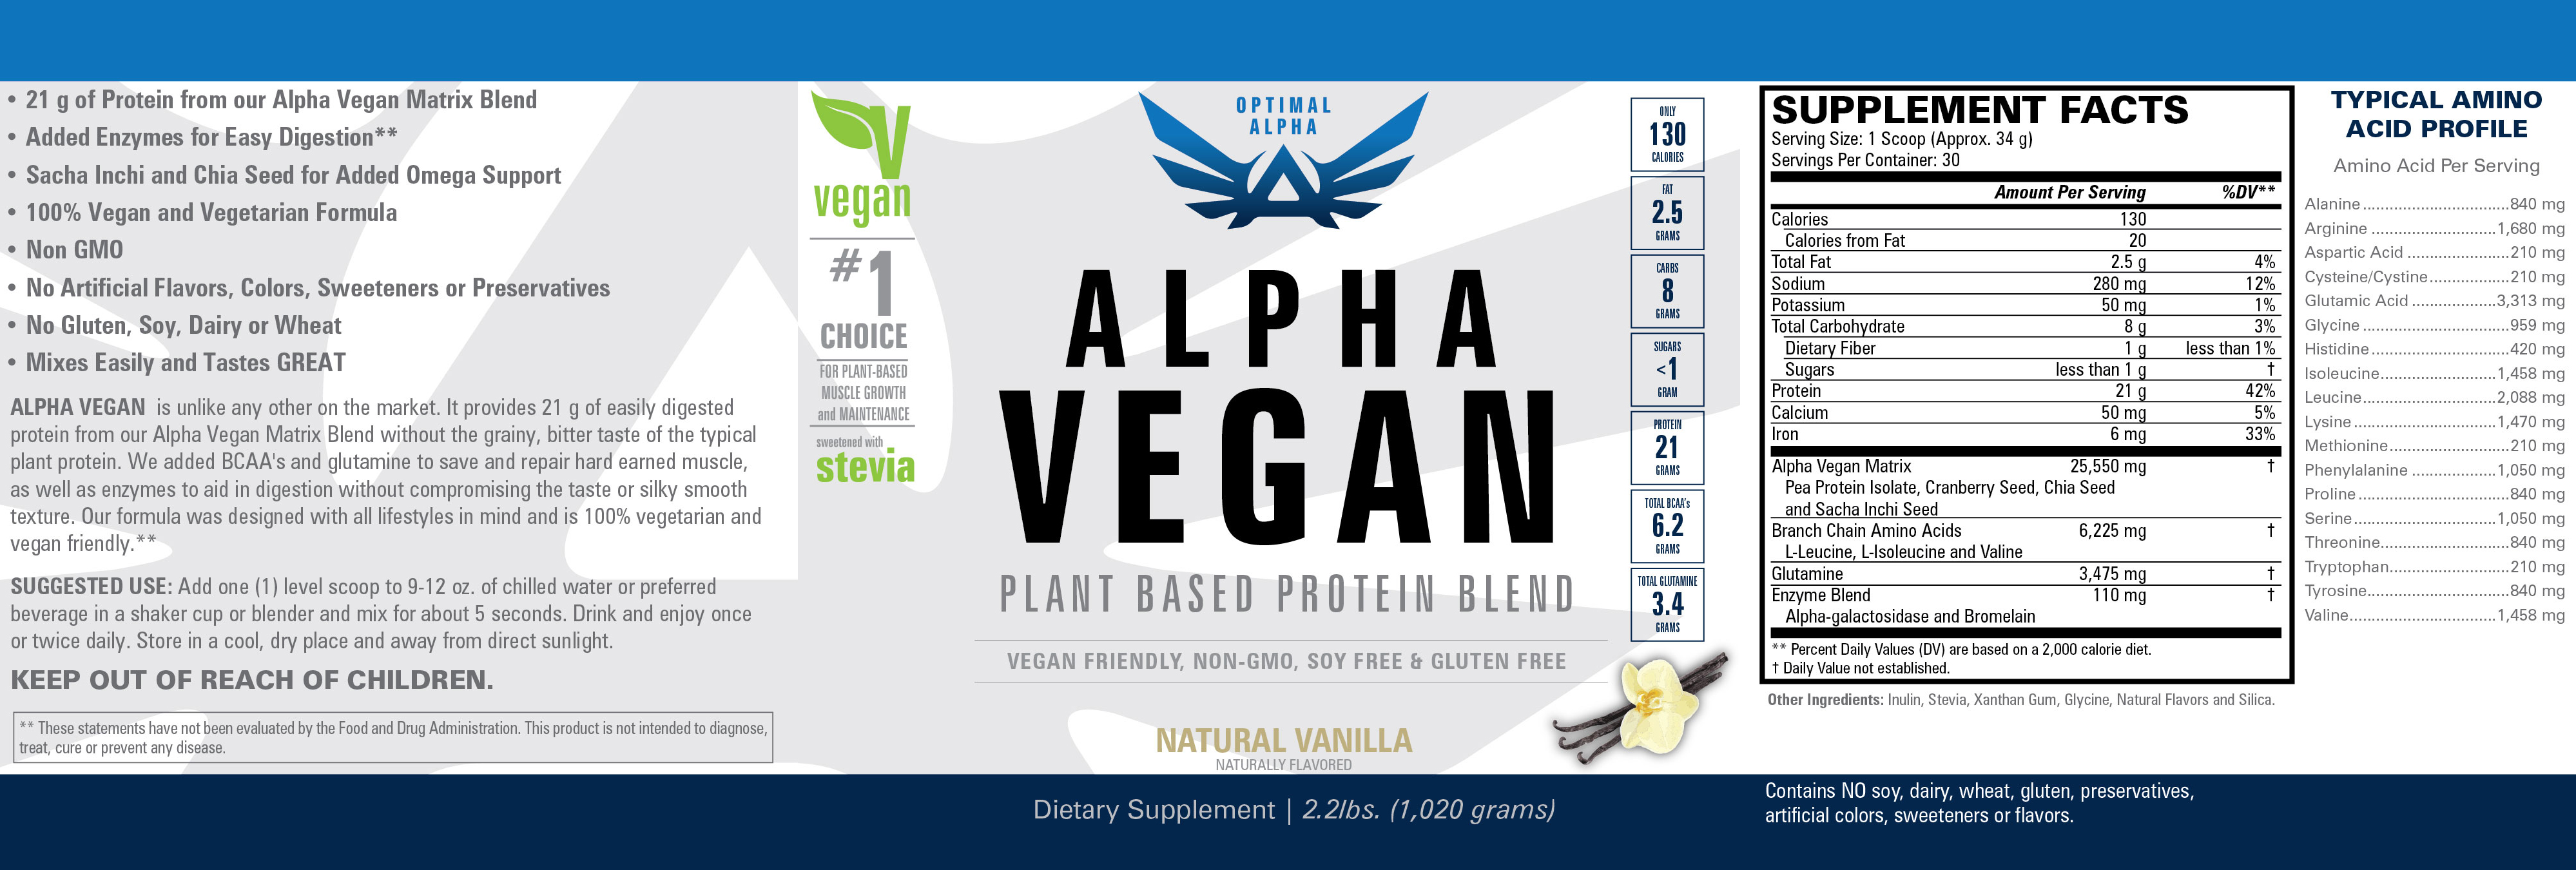 alpha-vegan-pro-vanilla-slim-label.jpg